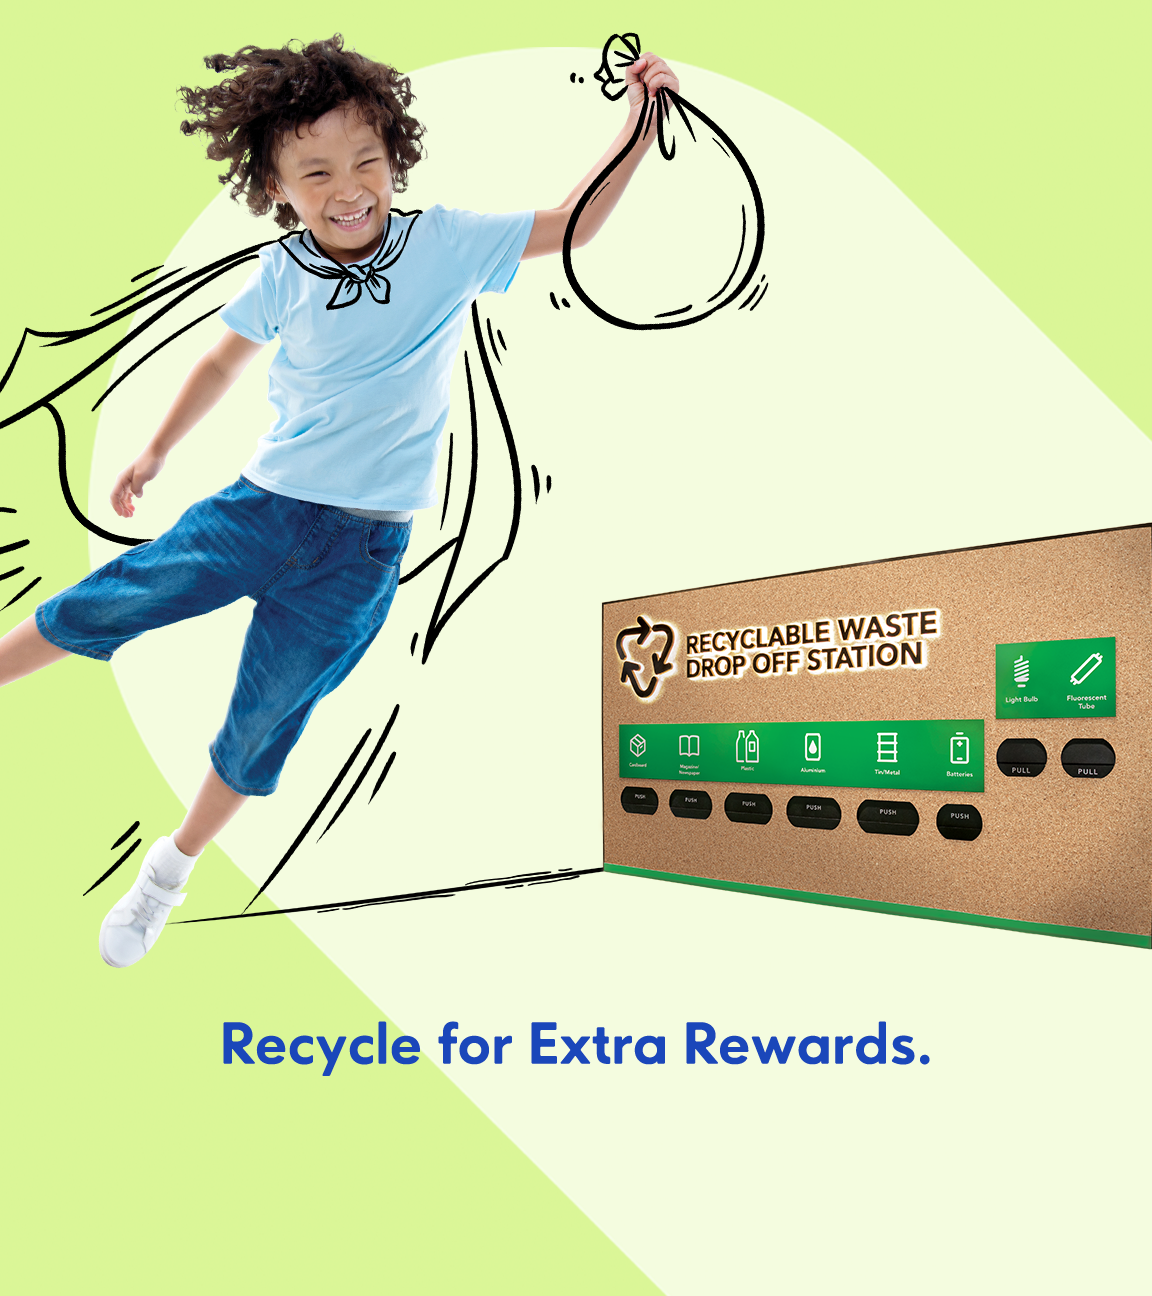 Recycle for Extra Rewards